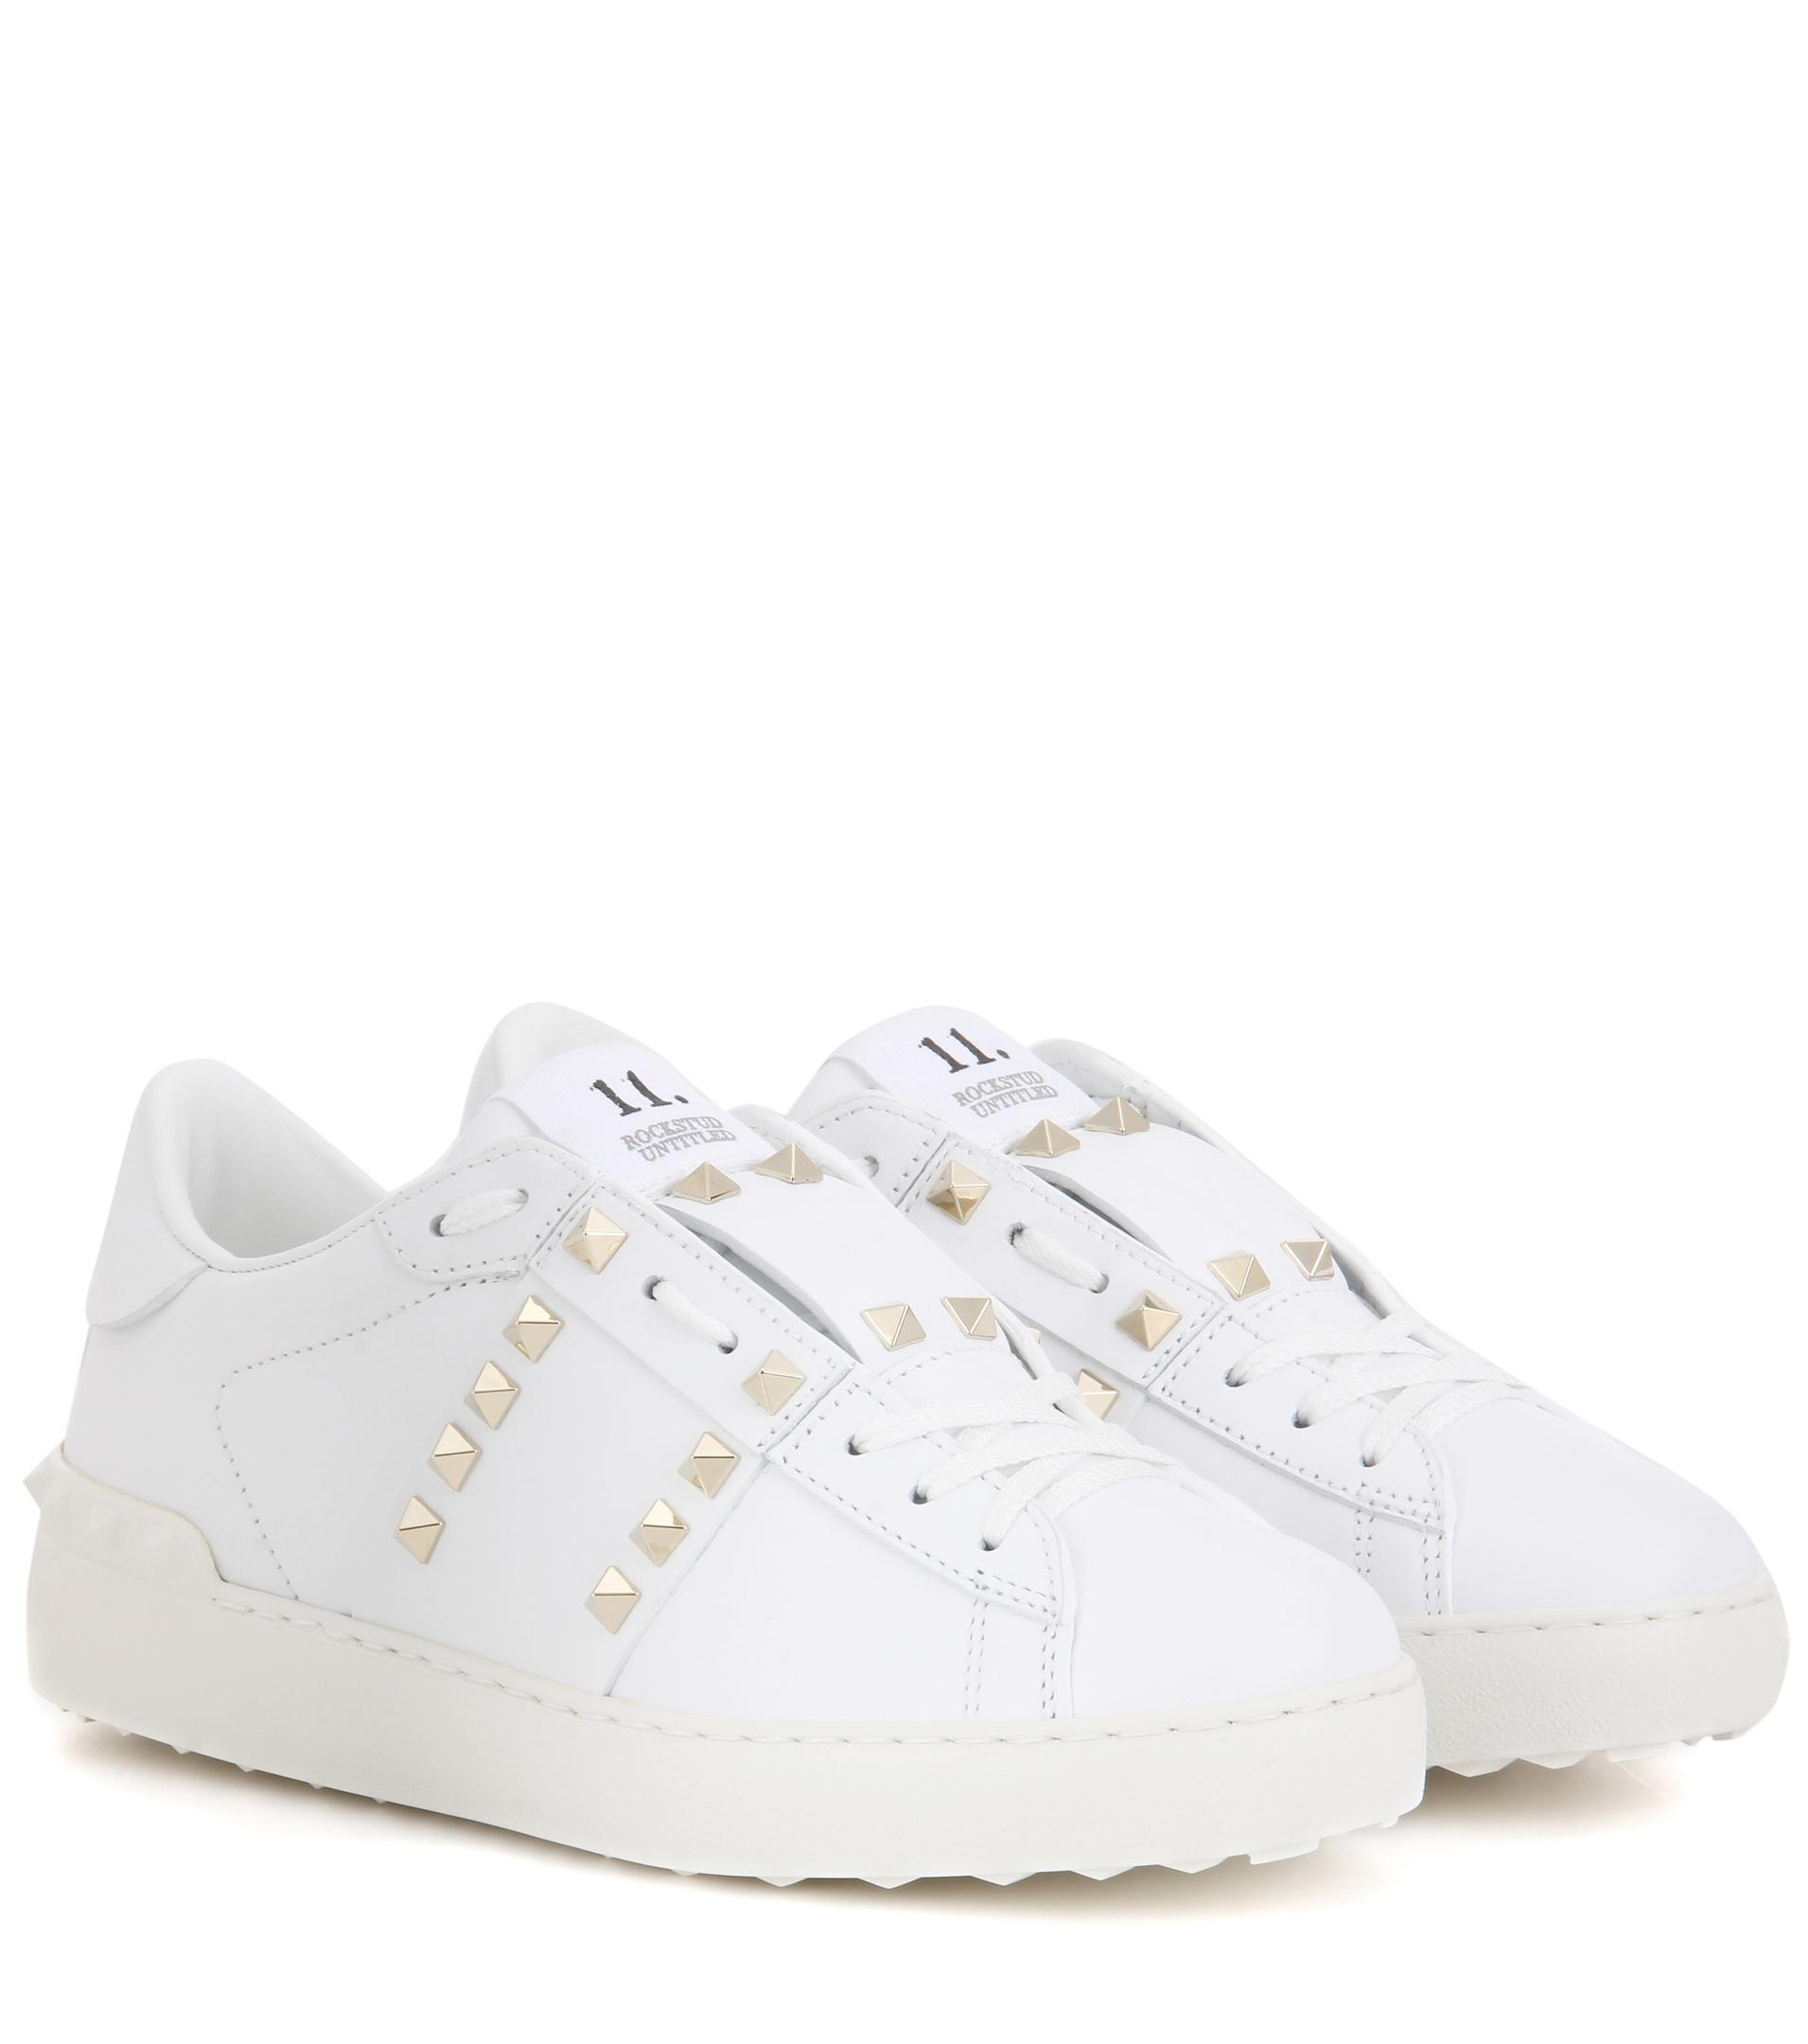 Garavani Rockstud Untitled Leather Sneakers Valentino vOVc29